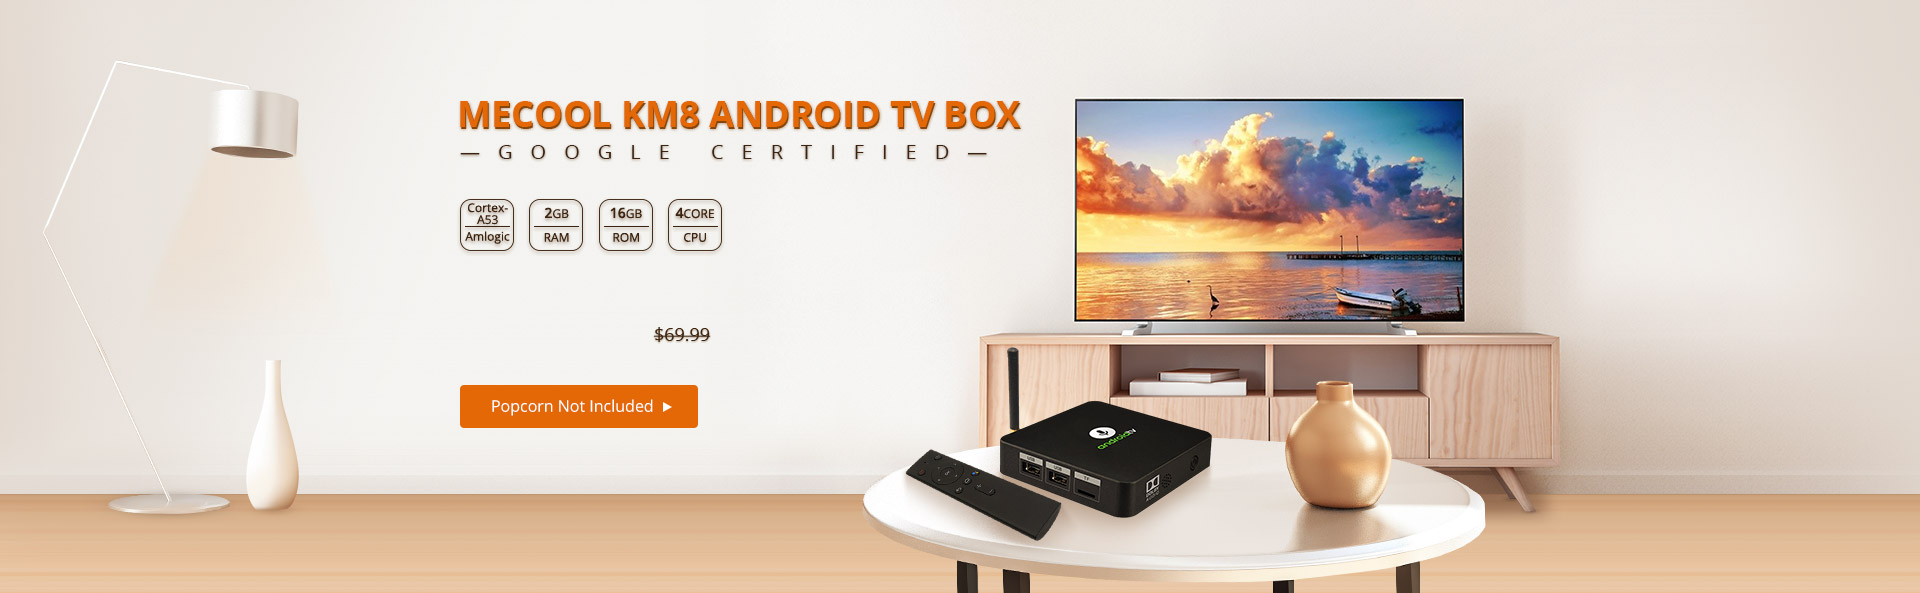 Best Budget Android TV Box Mecool KM8 Flash Sale from $59 99